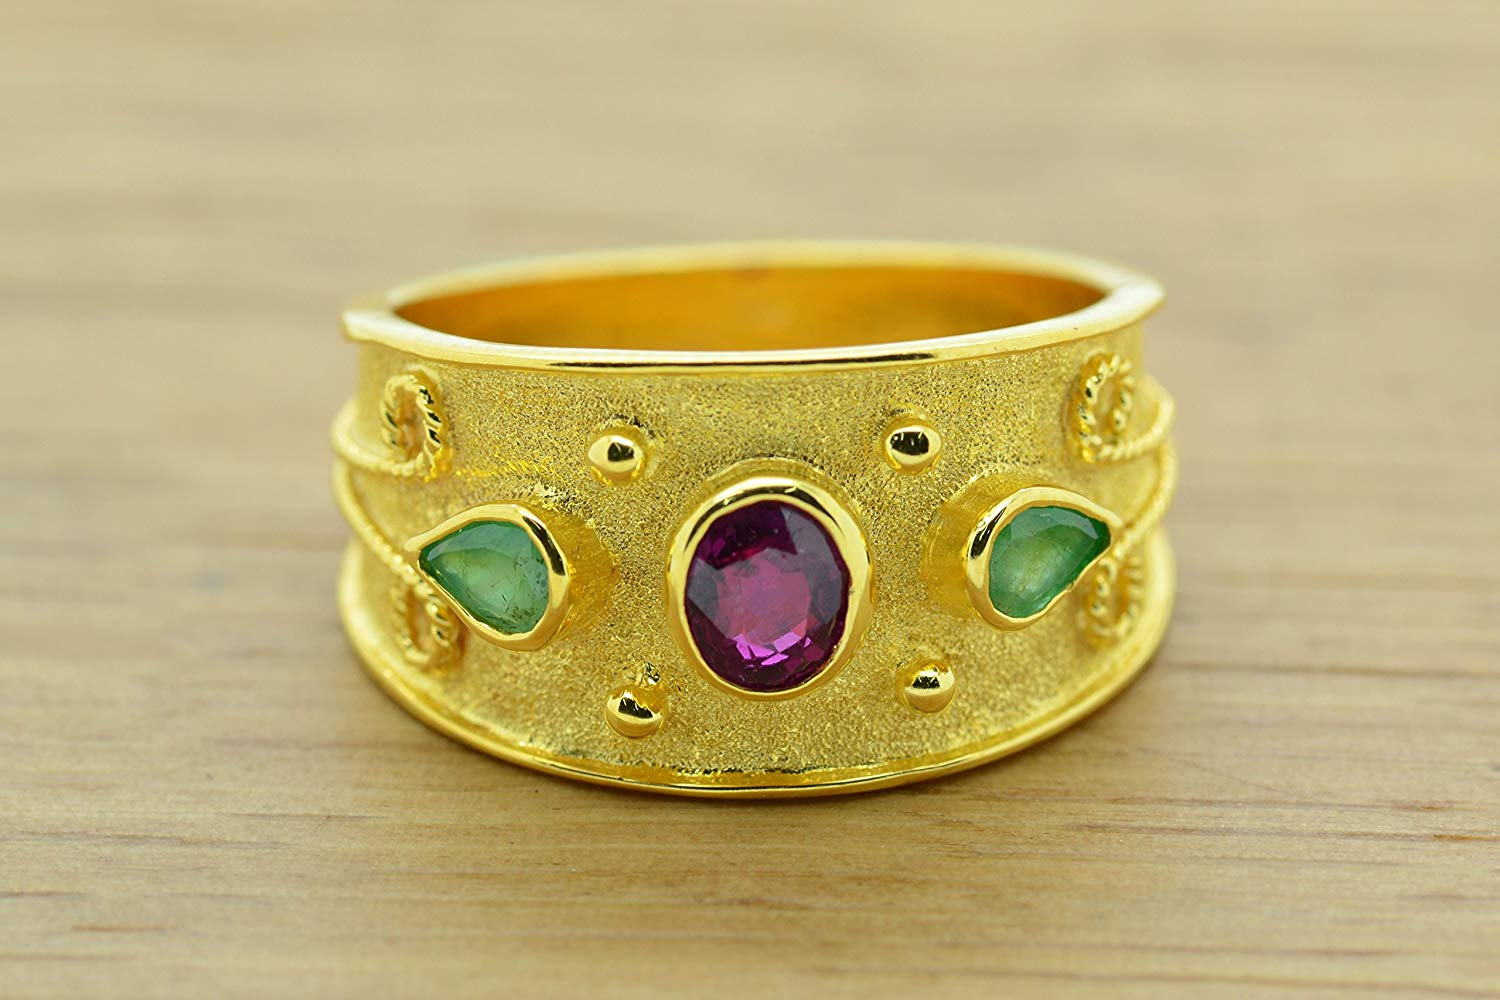 Ruby Emeralds Ring Byzantine Style 925 Sterling Silver 22K Gold Plated Greek Handmade Art, Byzantine Rubies Emeralds CZ Ring, 22K Gold Plated Ring, CZ Band Ring, Sterling Silver Ring, Byzantine Ring, Greek Jewelry, Luxury Ring, Medieval Ring, Elegant Sterling Silver Ring, cubic zirconia Ring